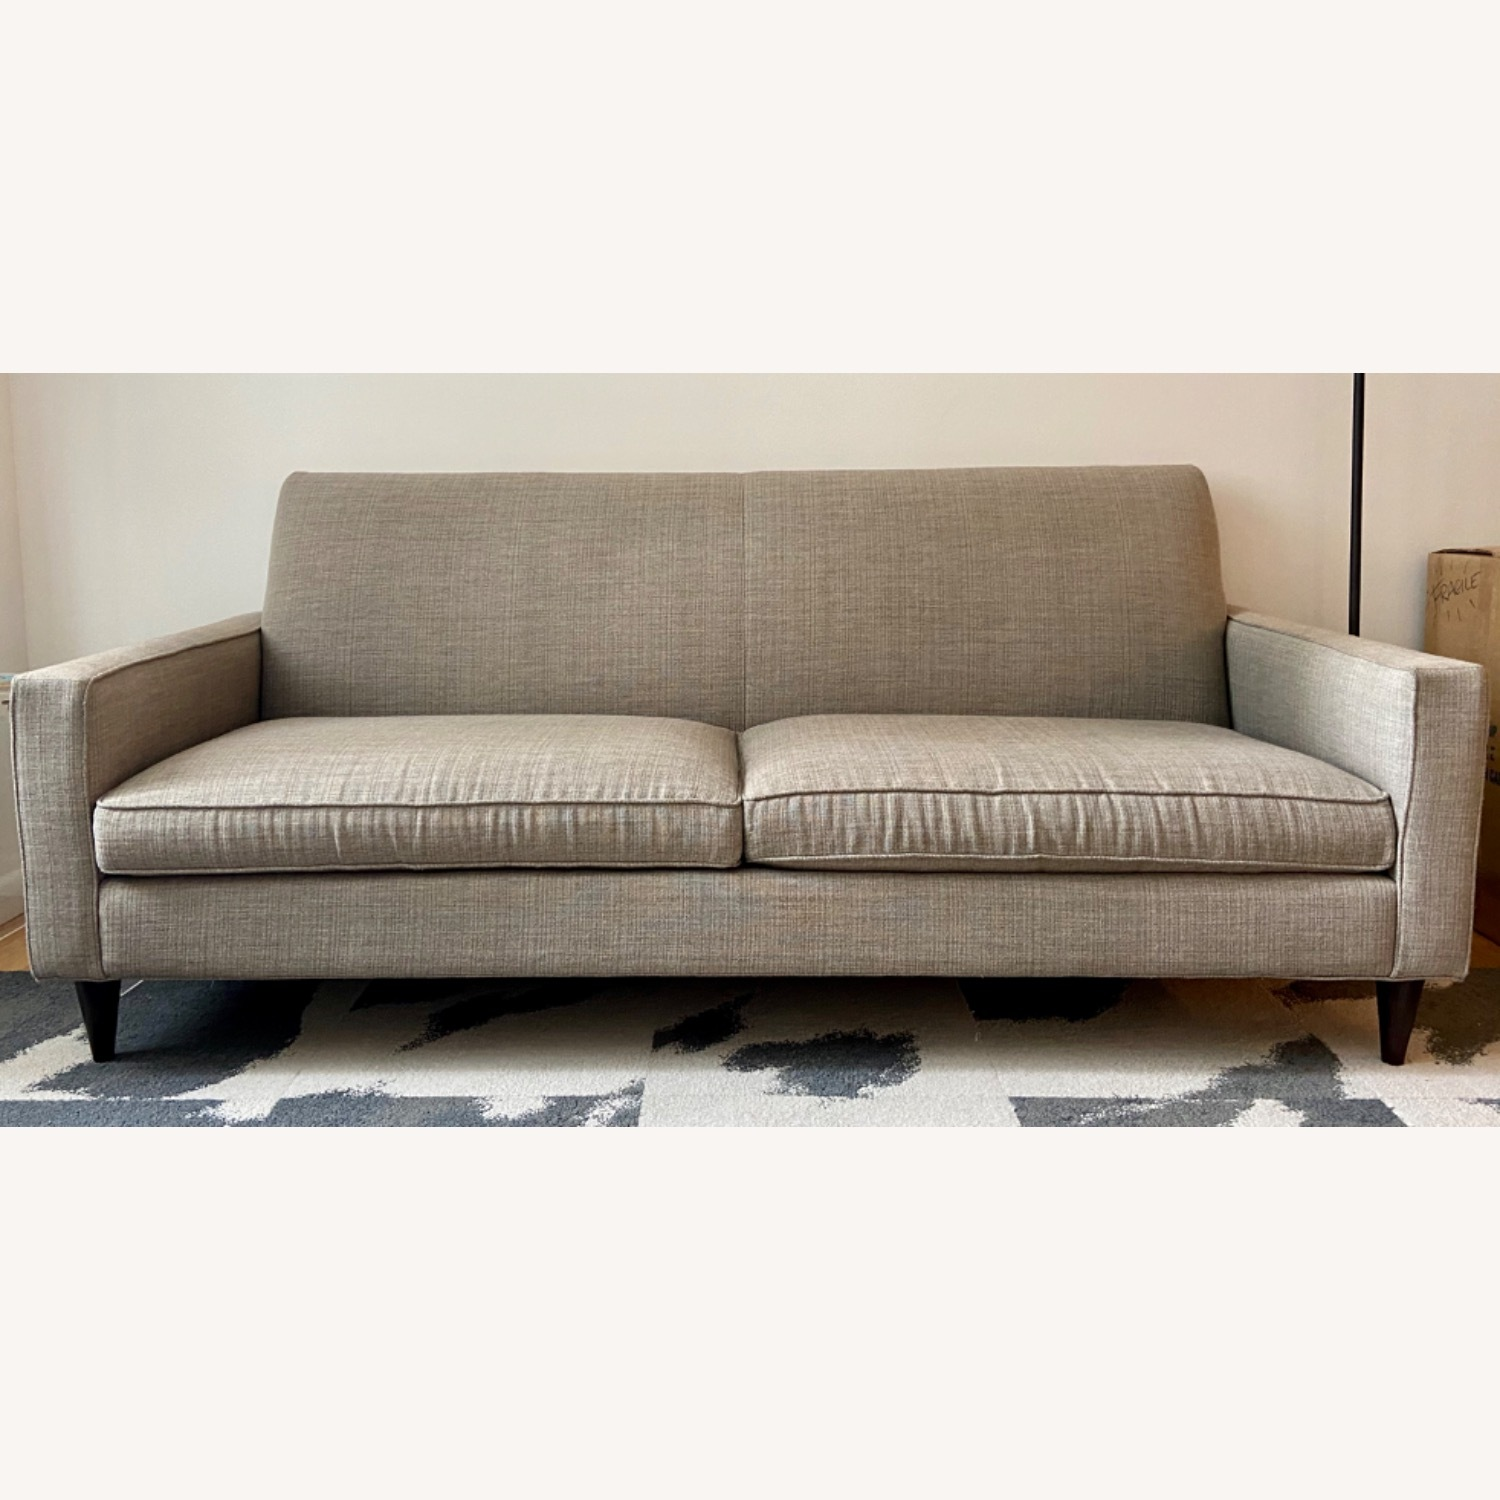 Room & Board Custom Grey Tweed Sofa - image-6